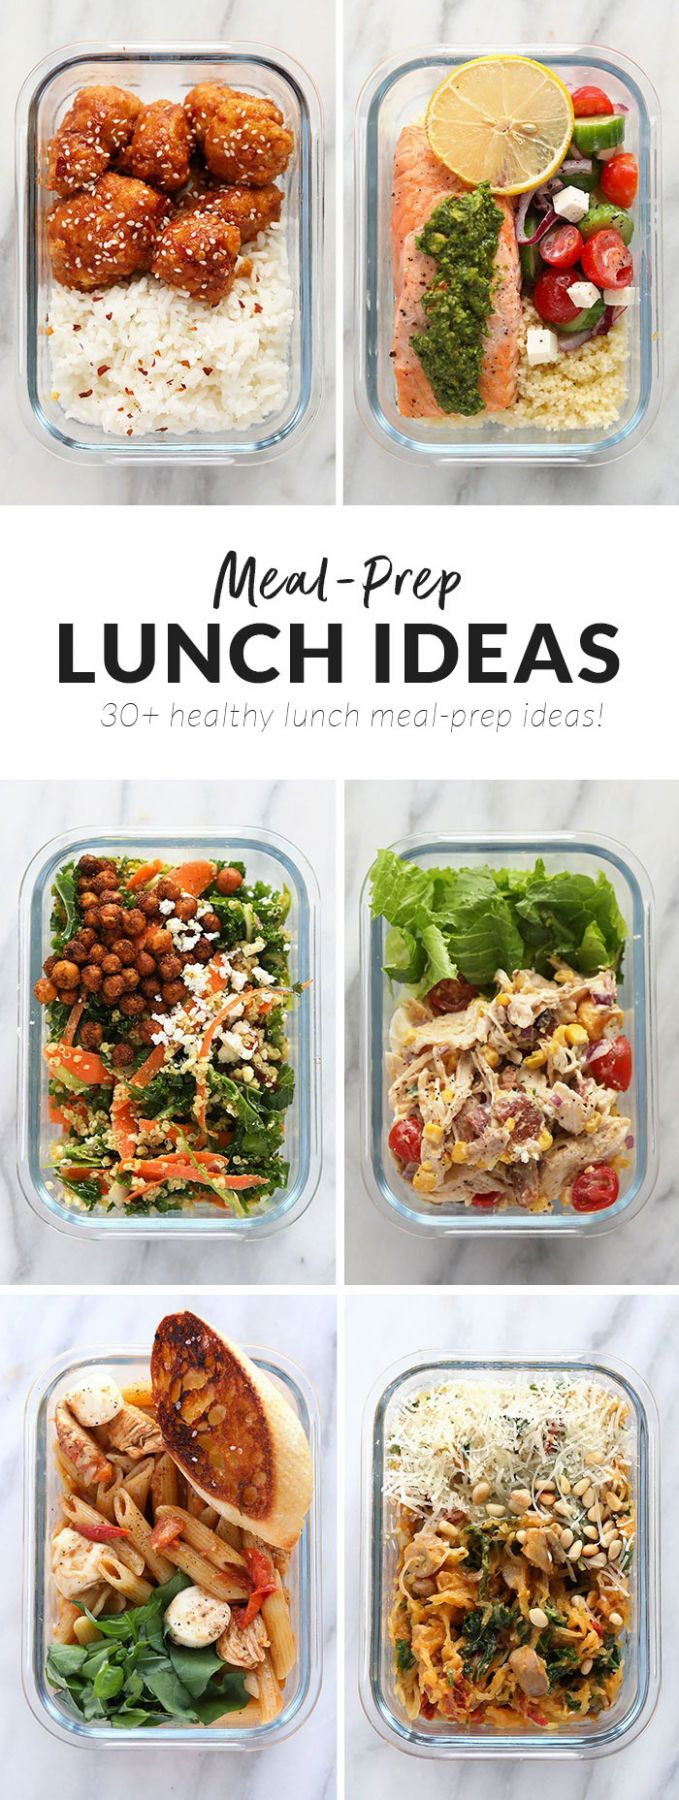 Delicious Healthy Lunch Ideas (12+ Lunch Meal Prep Ideas) - Fit ...